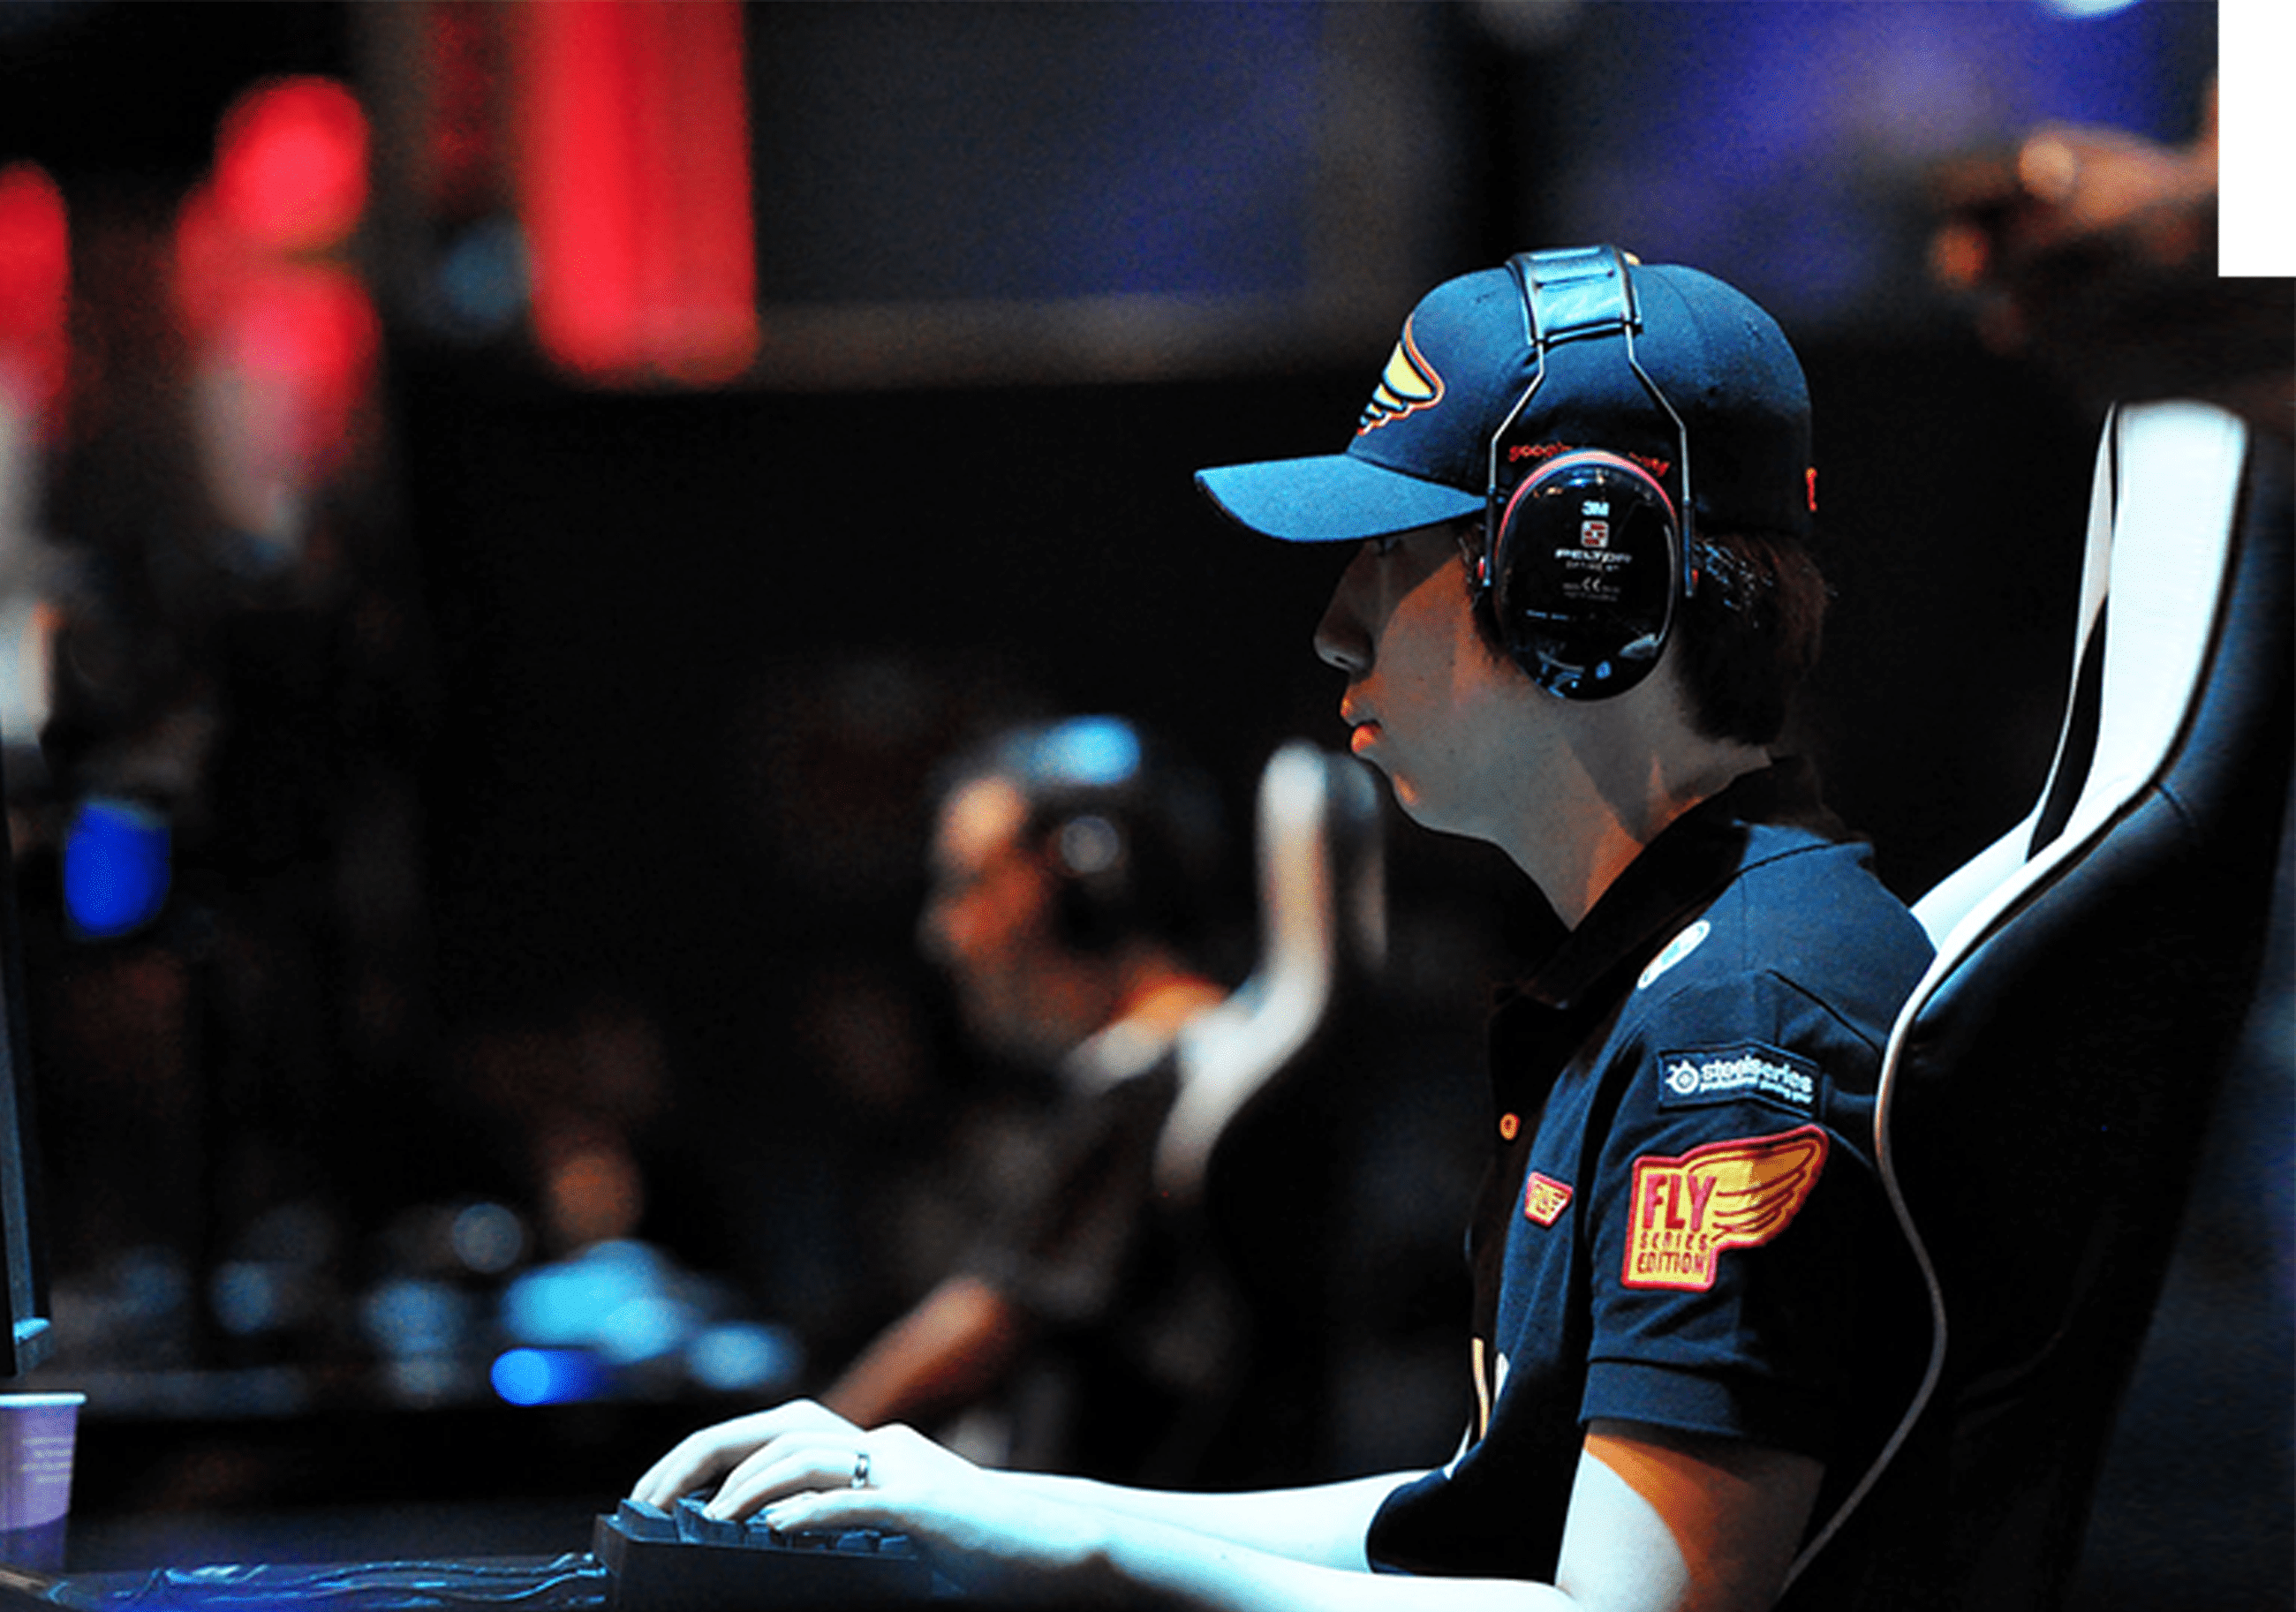 Side profile of a pro-gamer playing at a tournament